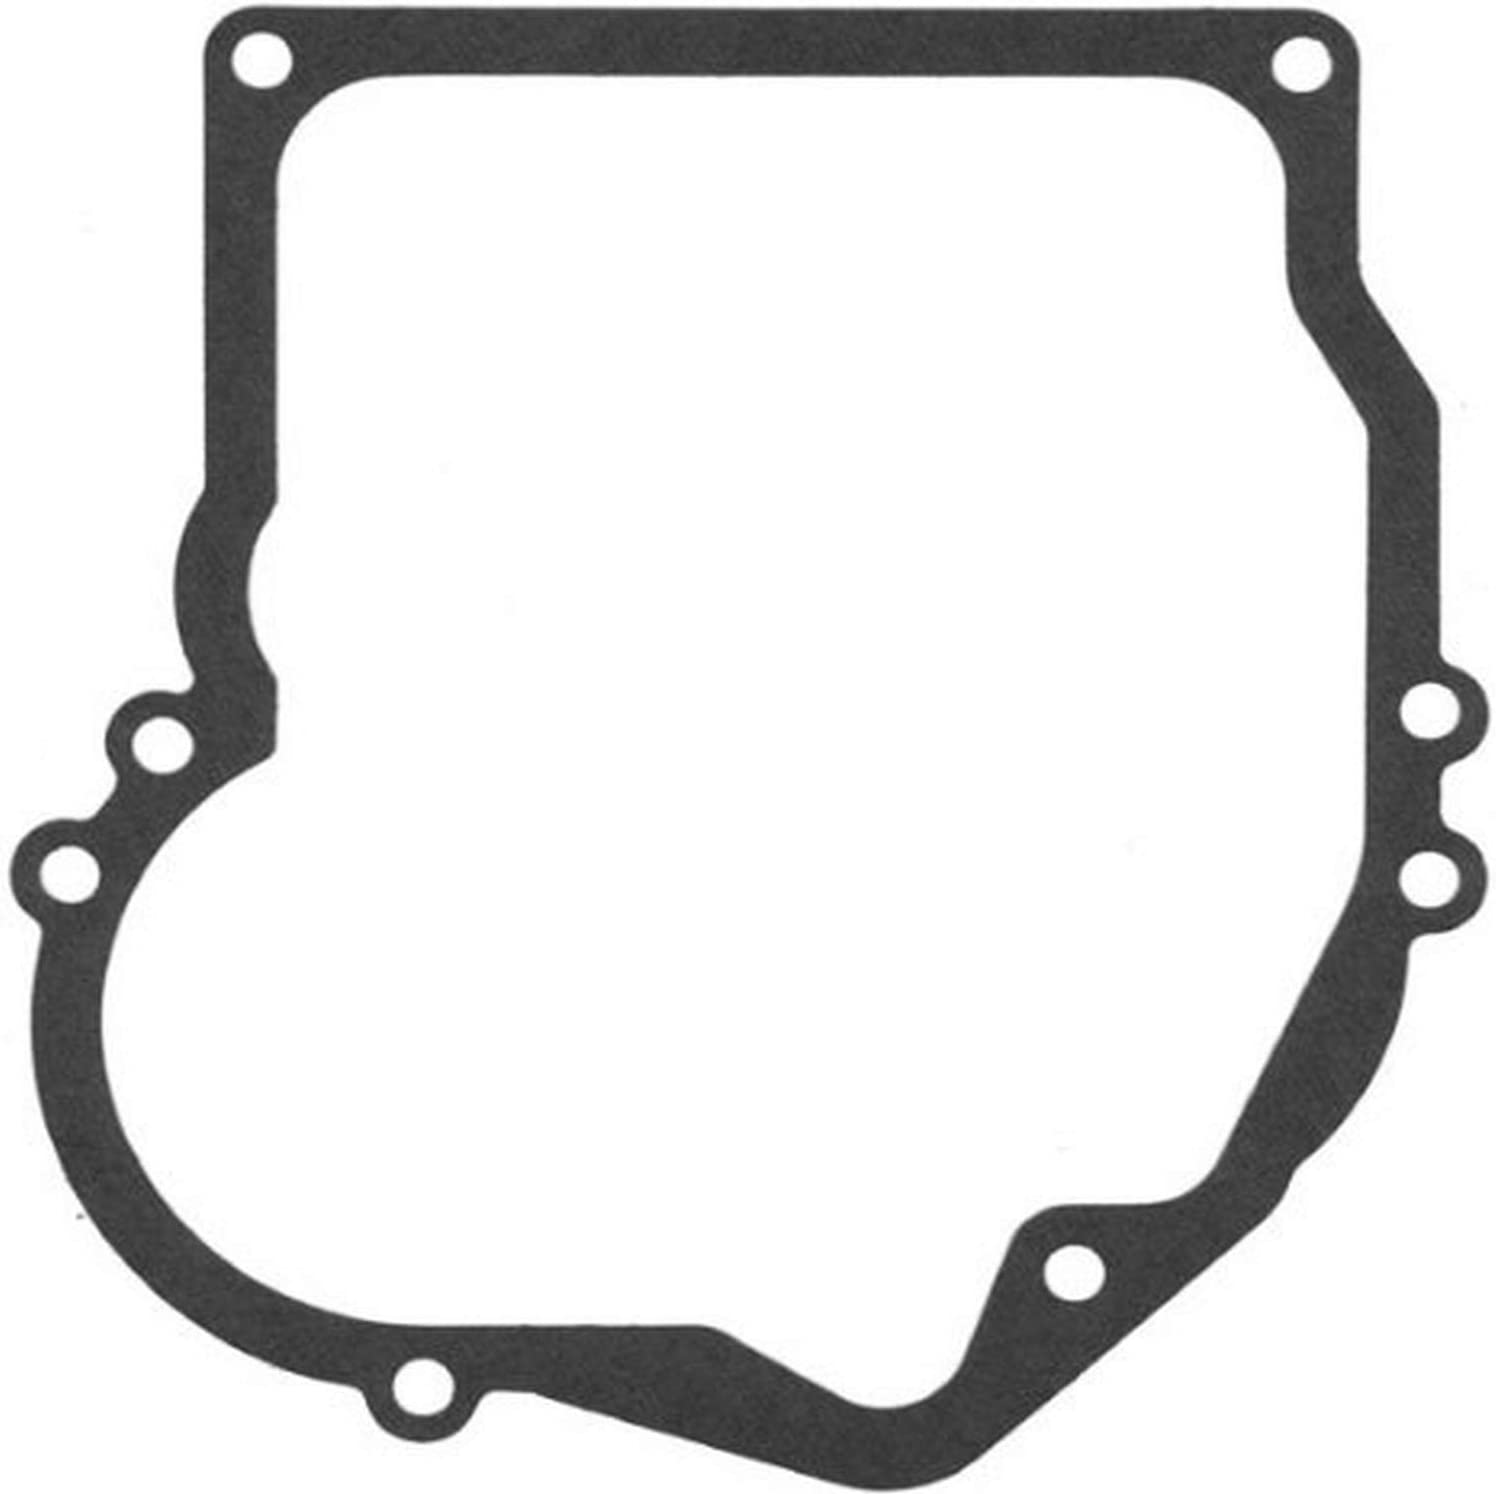 Oregon 50-204 Base Gasket Tecumseh Part Numbers 35261, 26750A and 37130